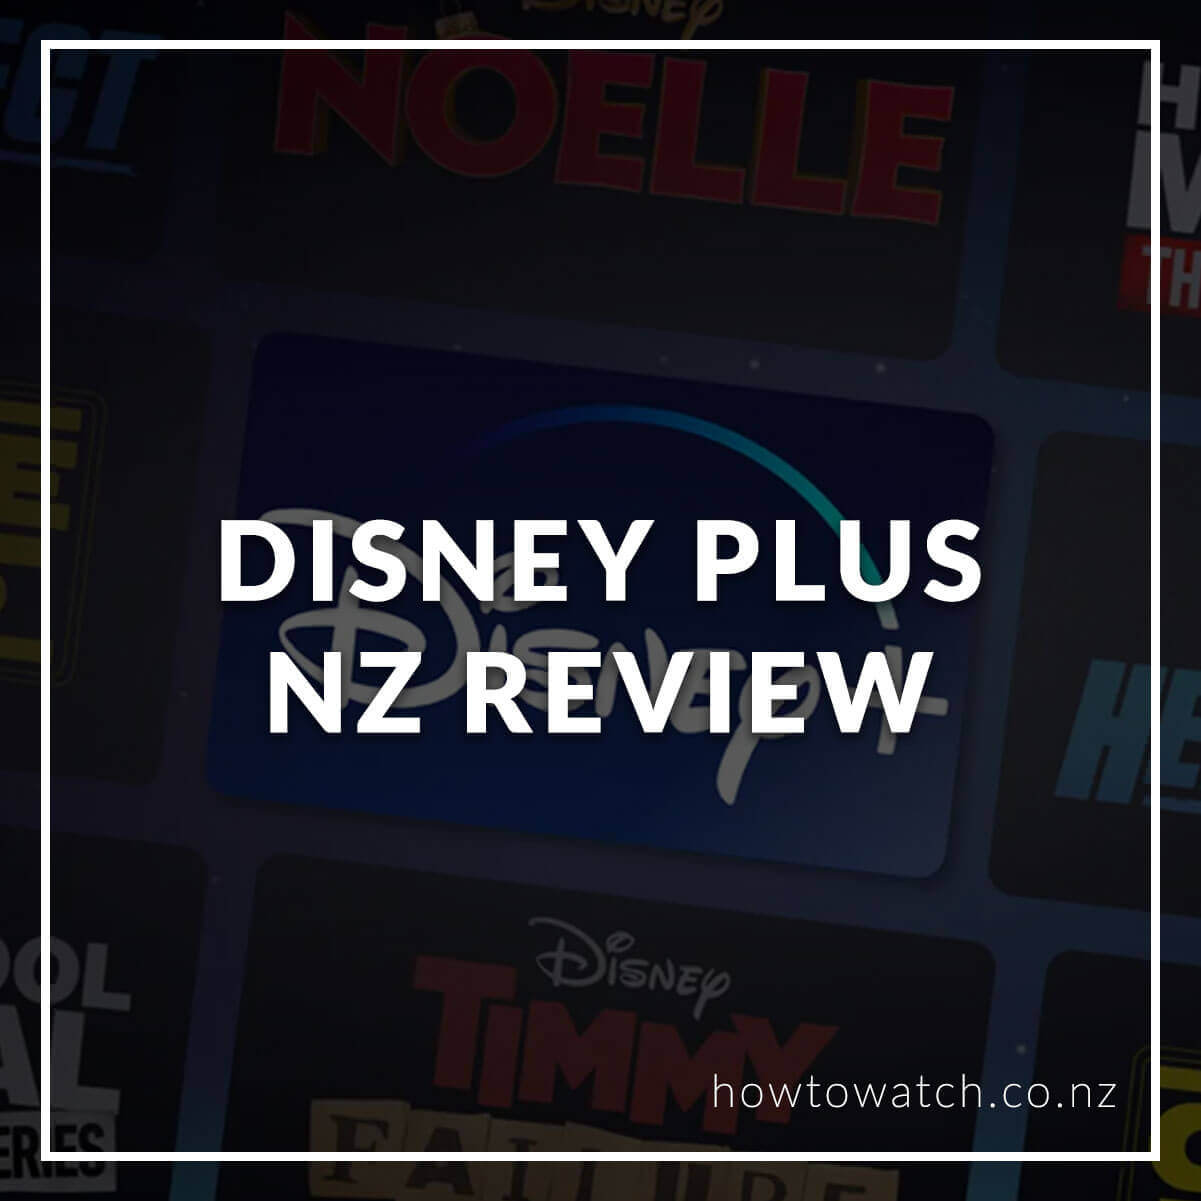 Disney Plus NZ Review 2021 - What You Need to Know